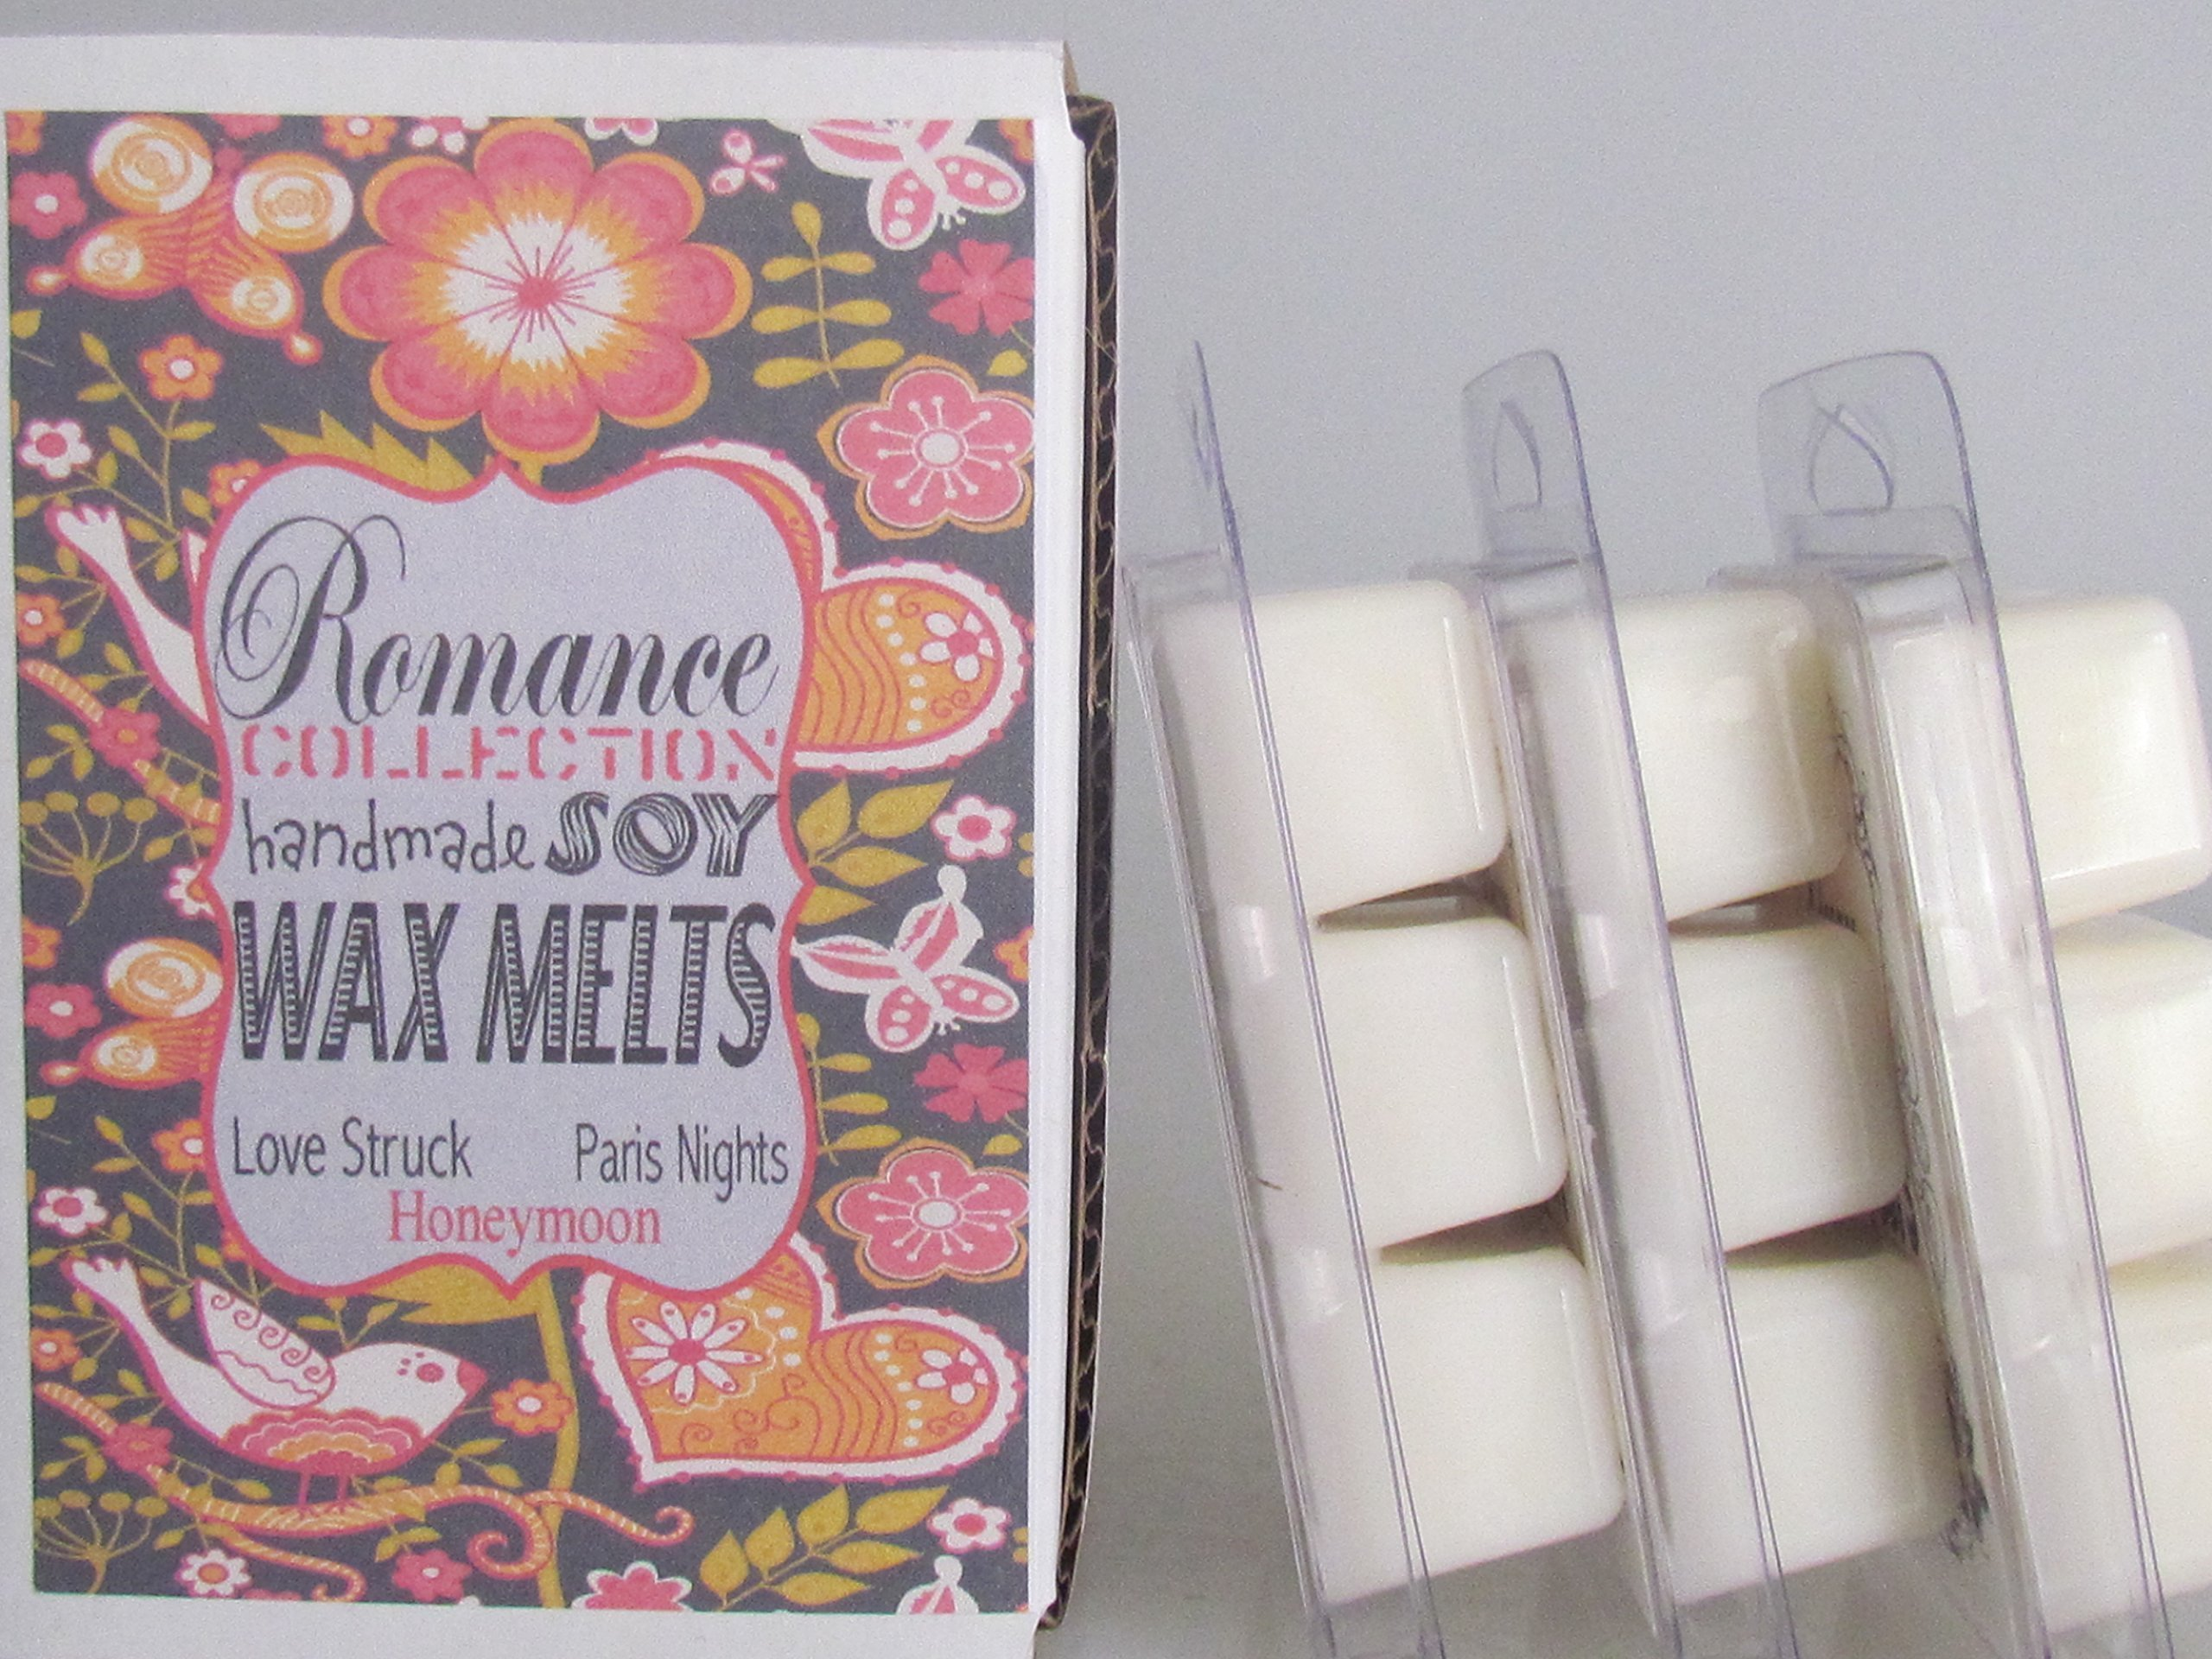 Scented Soy Candle Tarts Wax Melts For Warmers 3 Variety Pack Love Struck, Honeymoon, Paris Nights